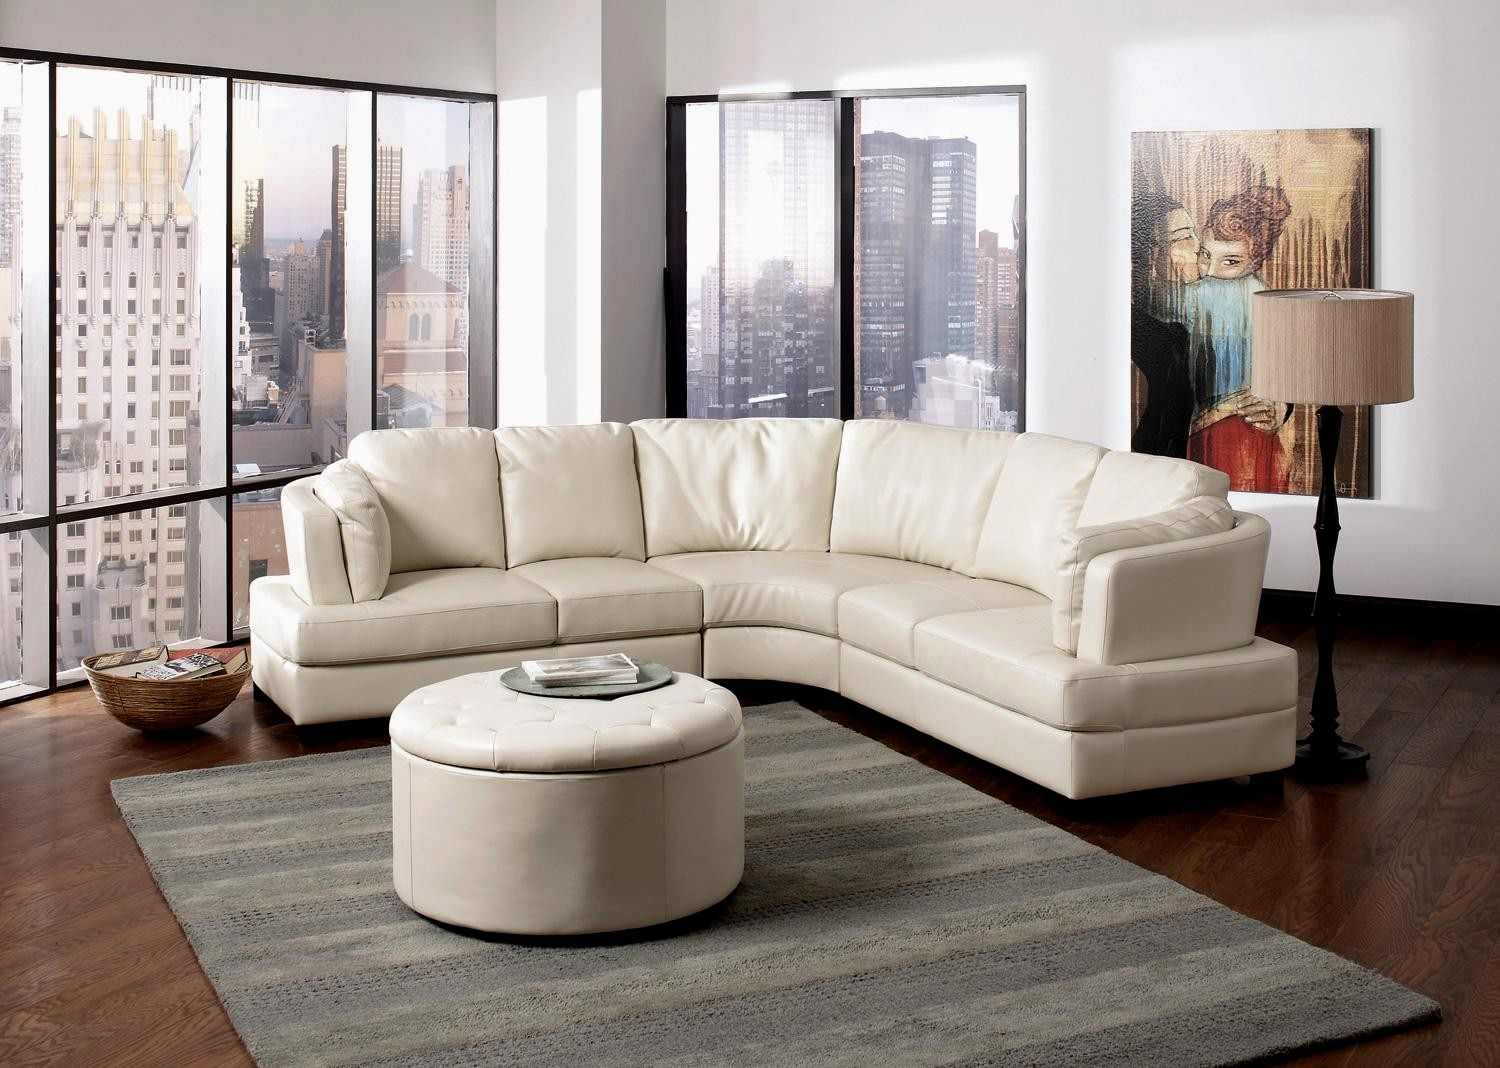 finest apartment size sofas decoration-Modern Apartment Size sofas Picture